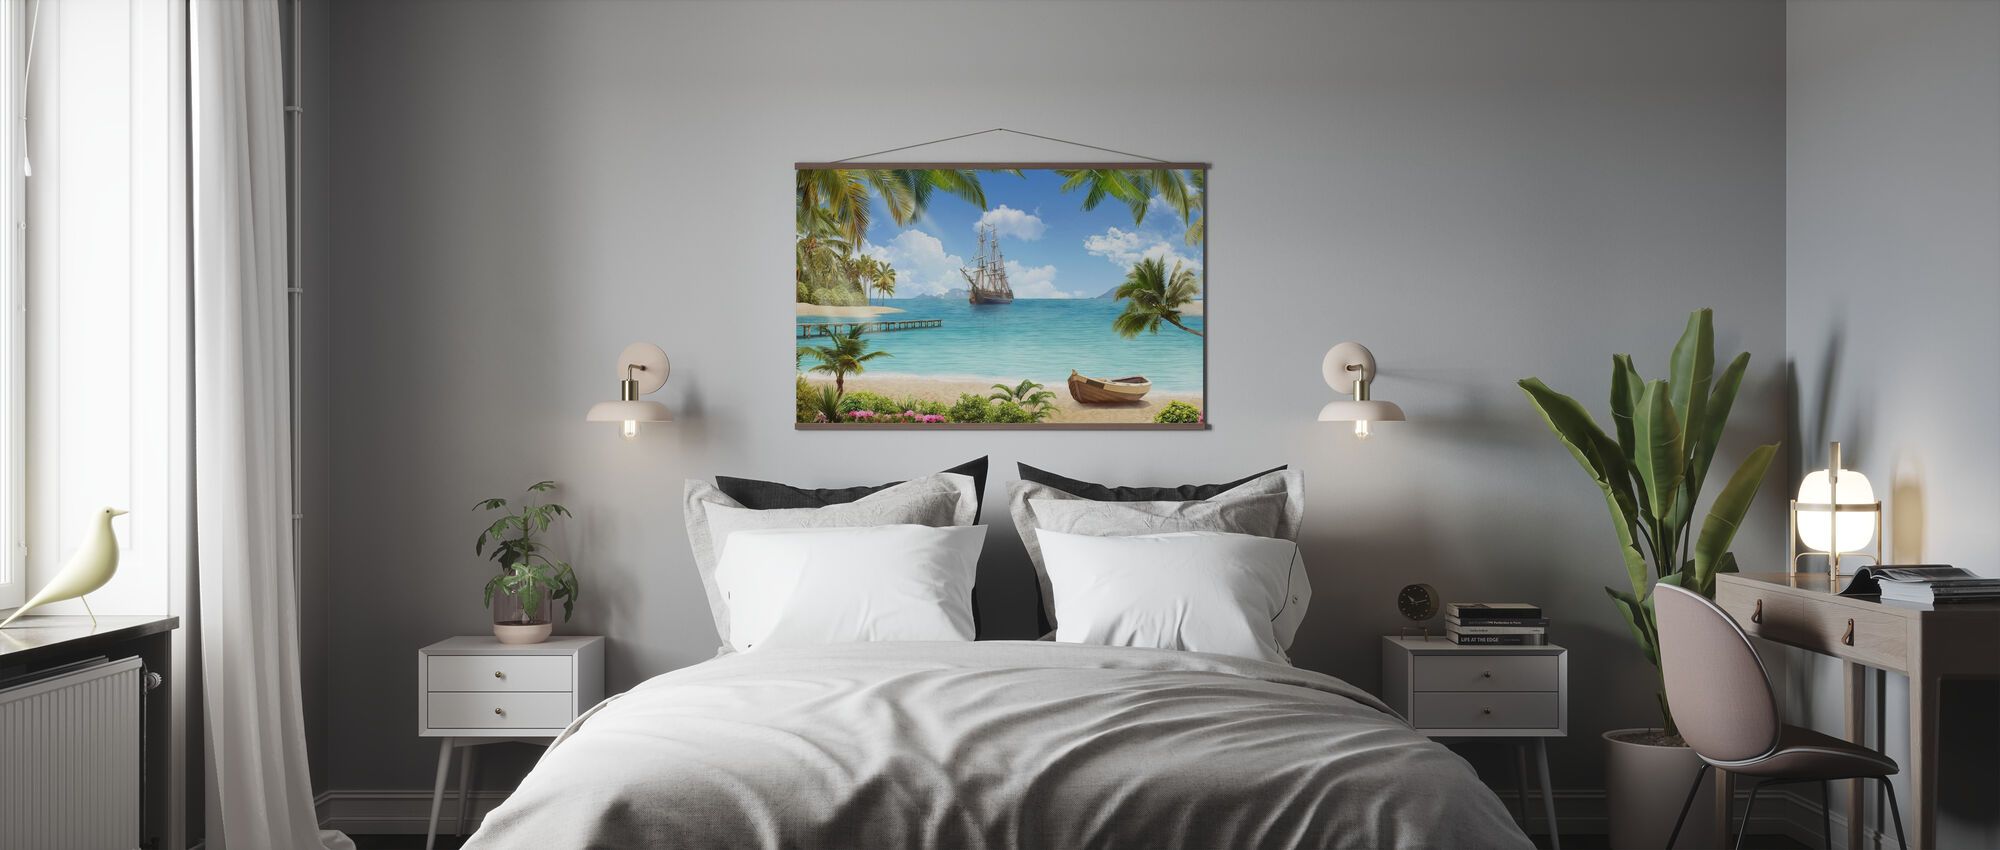 Ship Comes Loaded - Poster - Bedroom